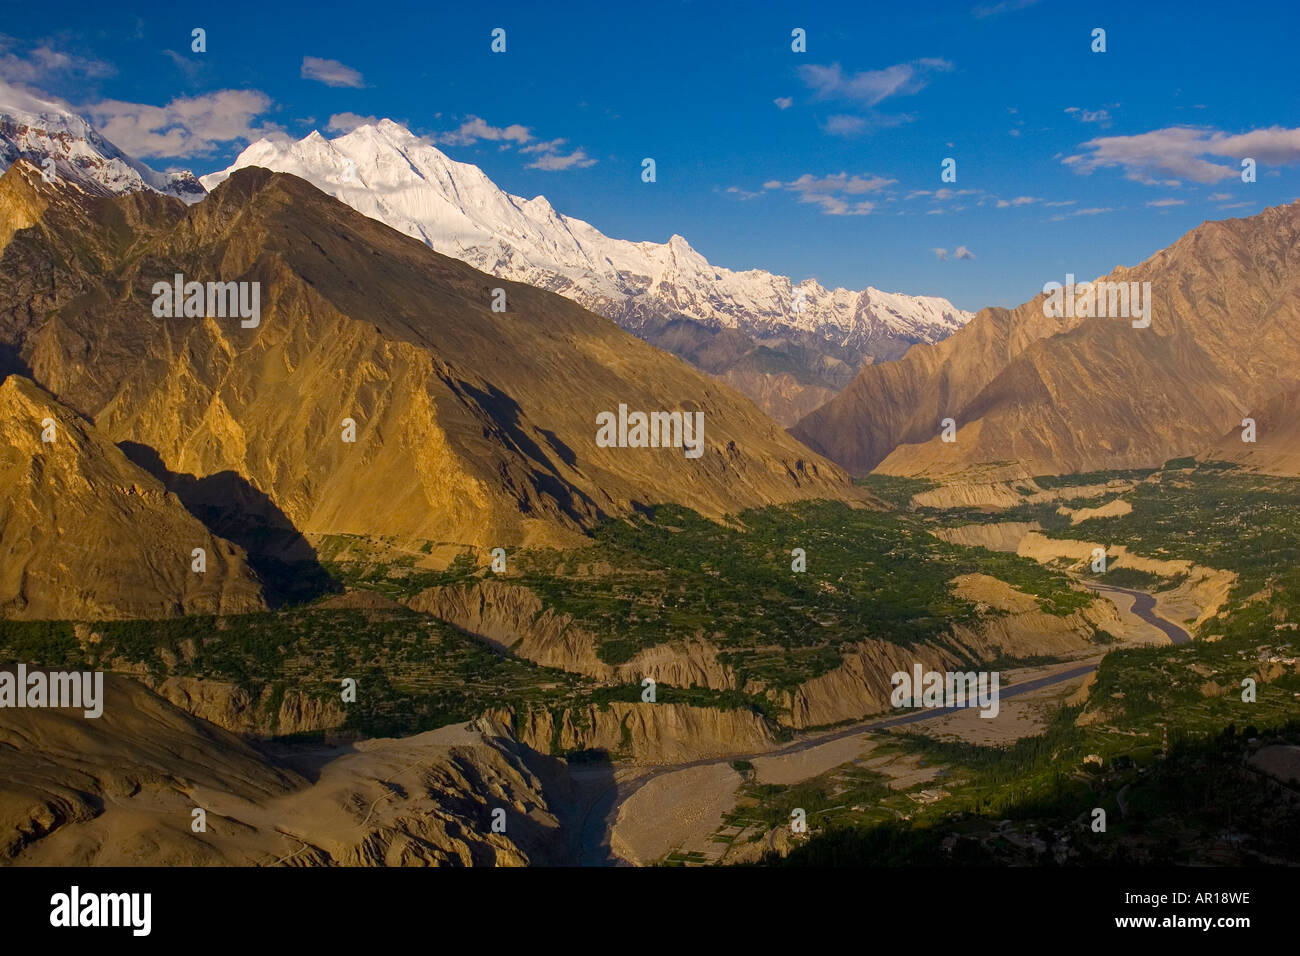 Karimabad and Hunza River and Valley early in the morning Karimabad Pakistan - Stock Image